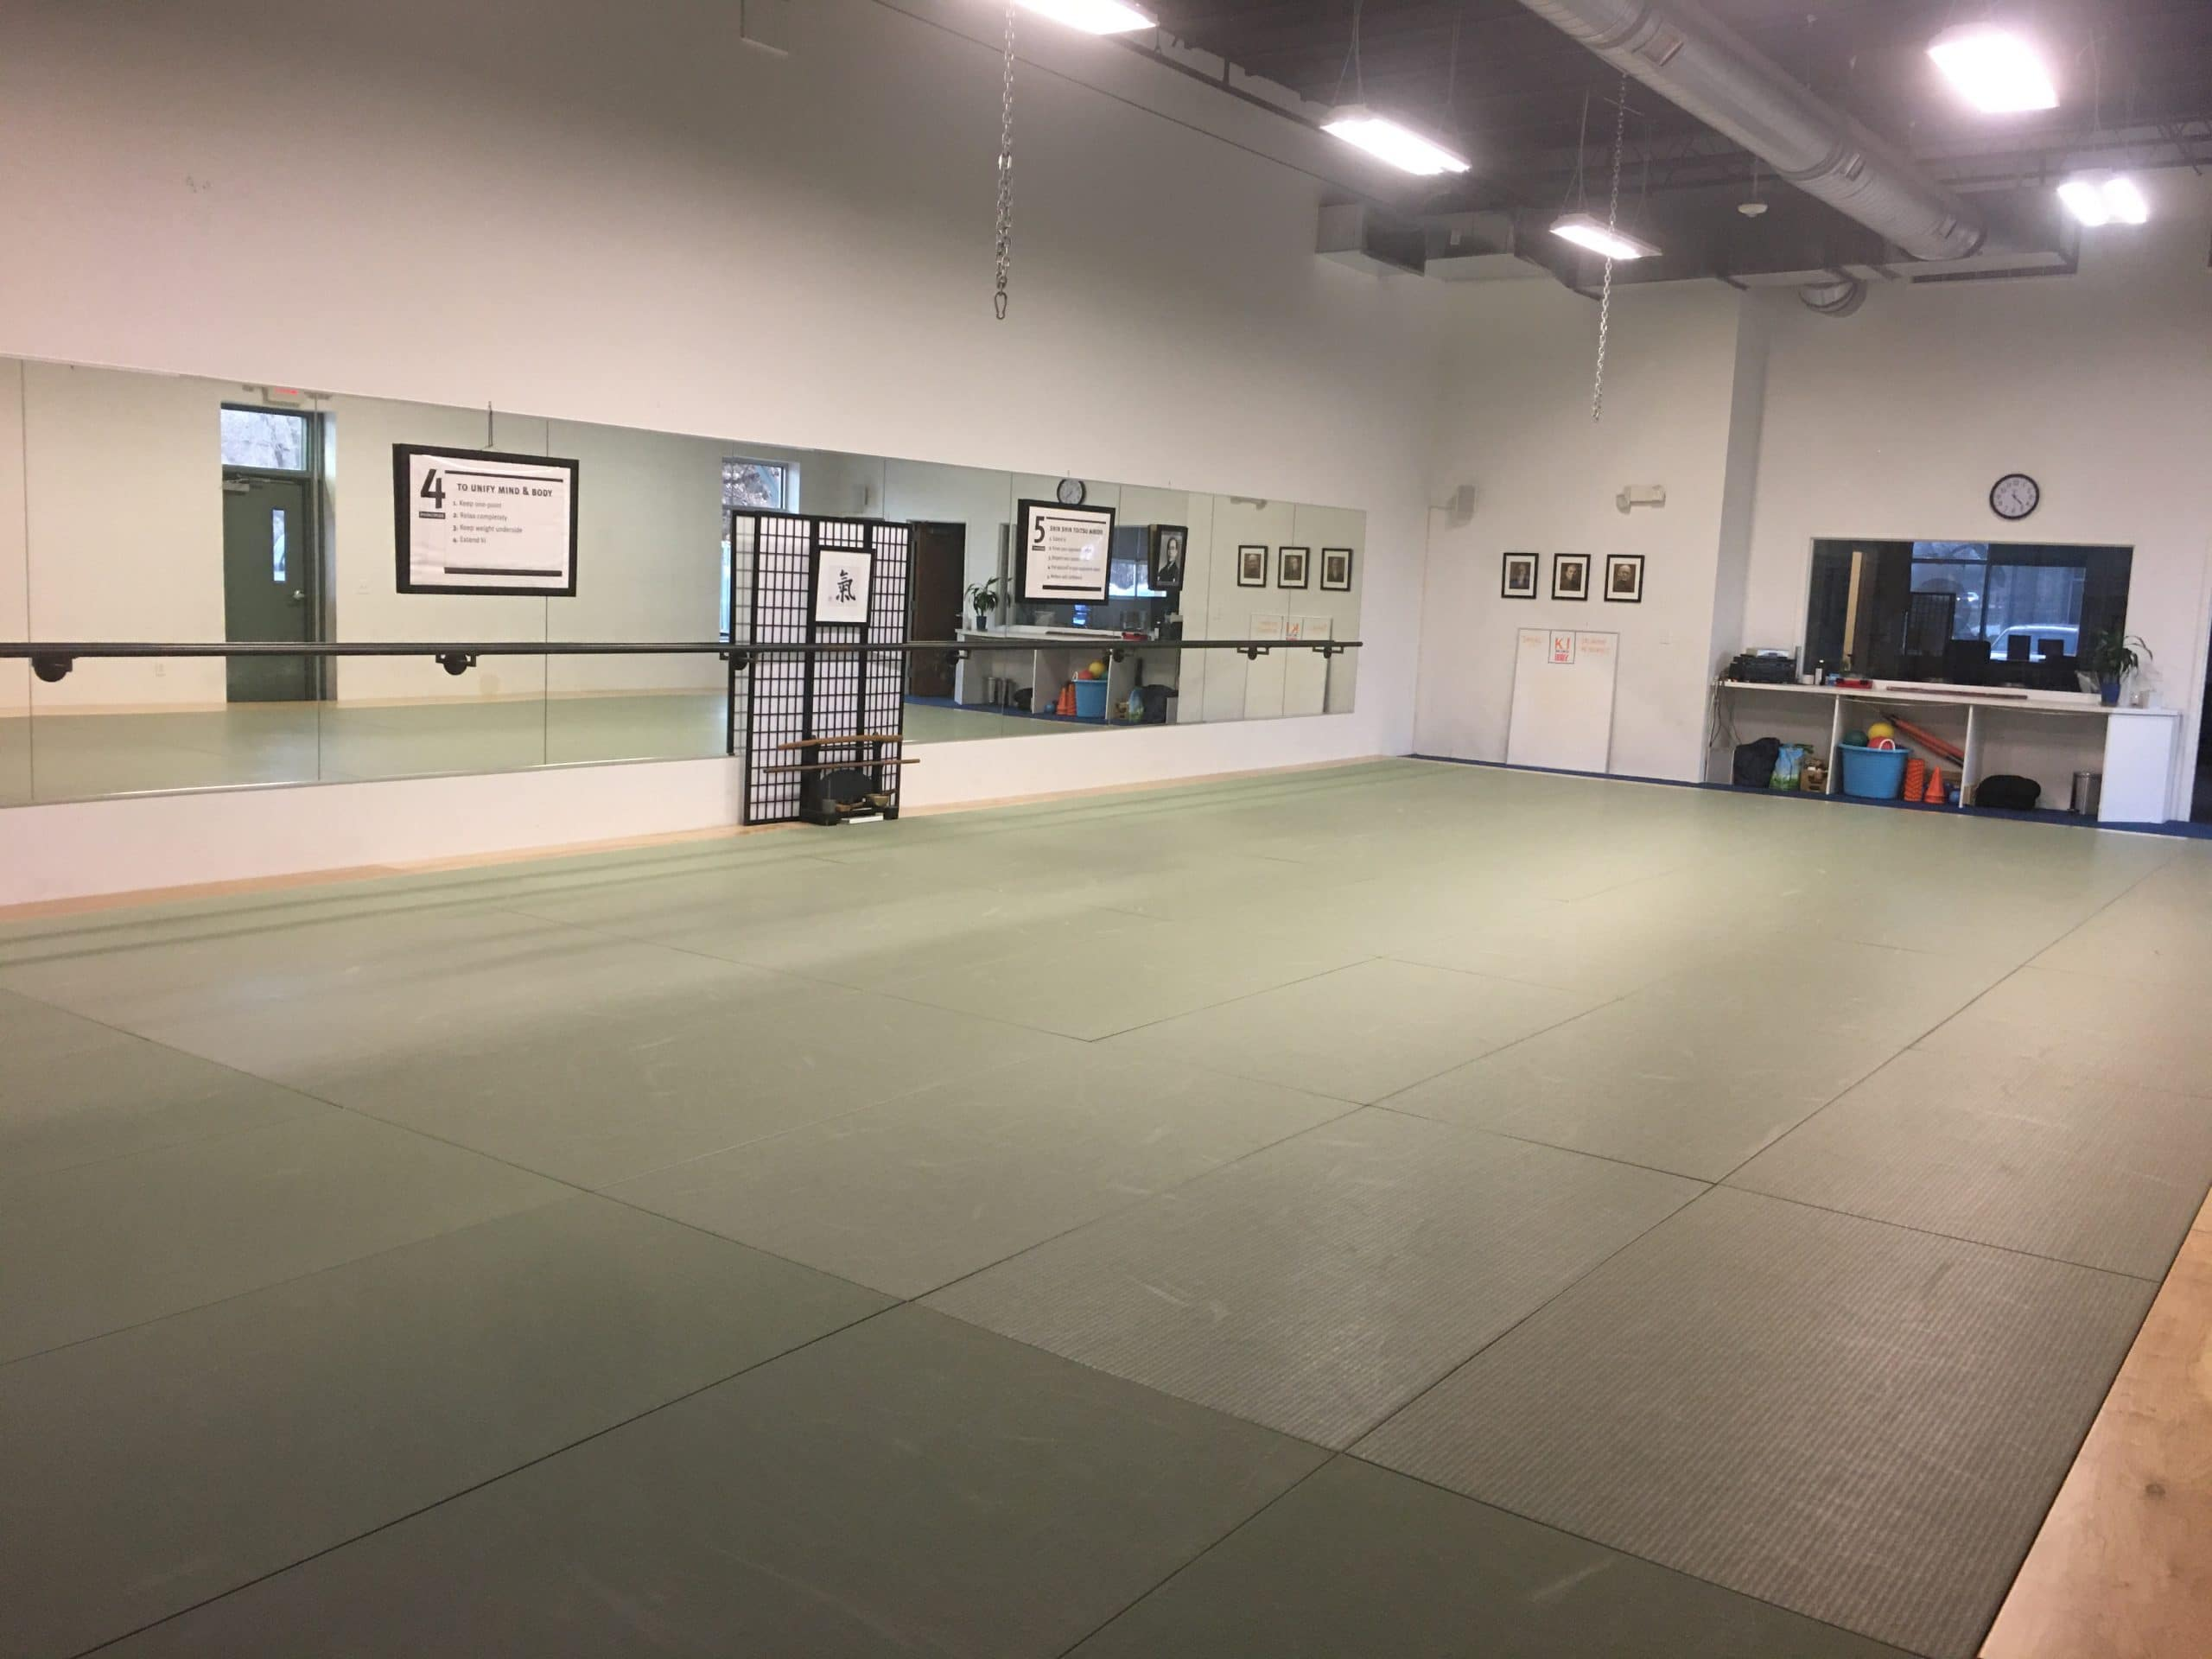 Boulder Studio Rental-Dojo Space for Rent by the Hour 4